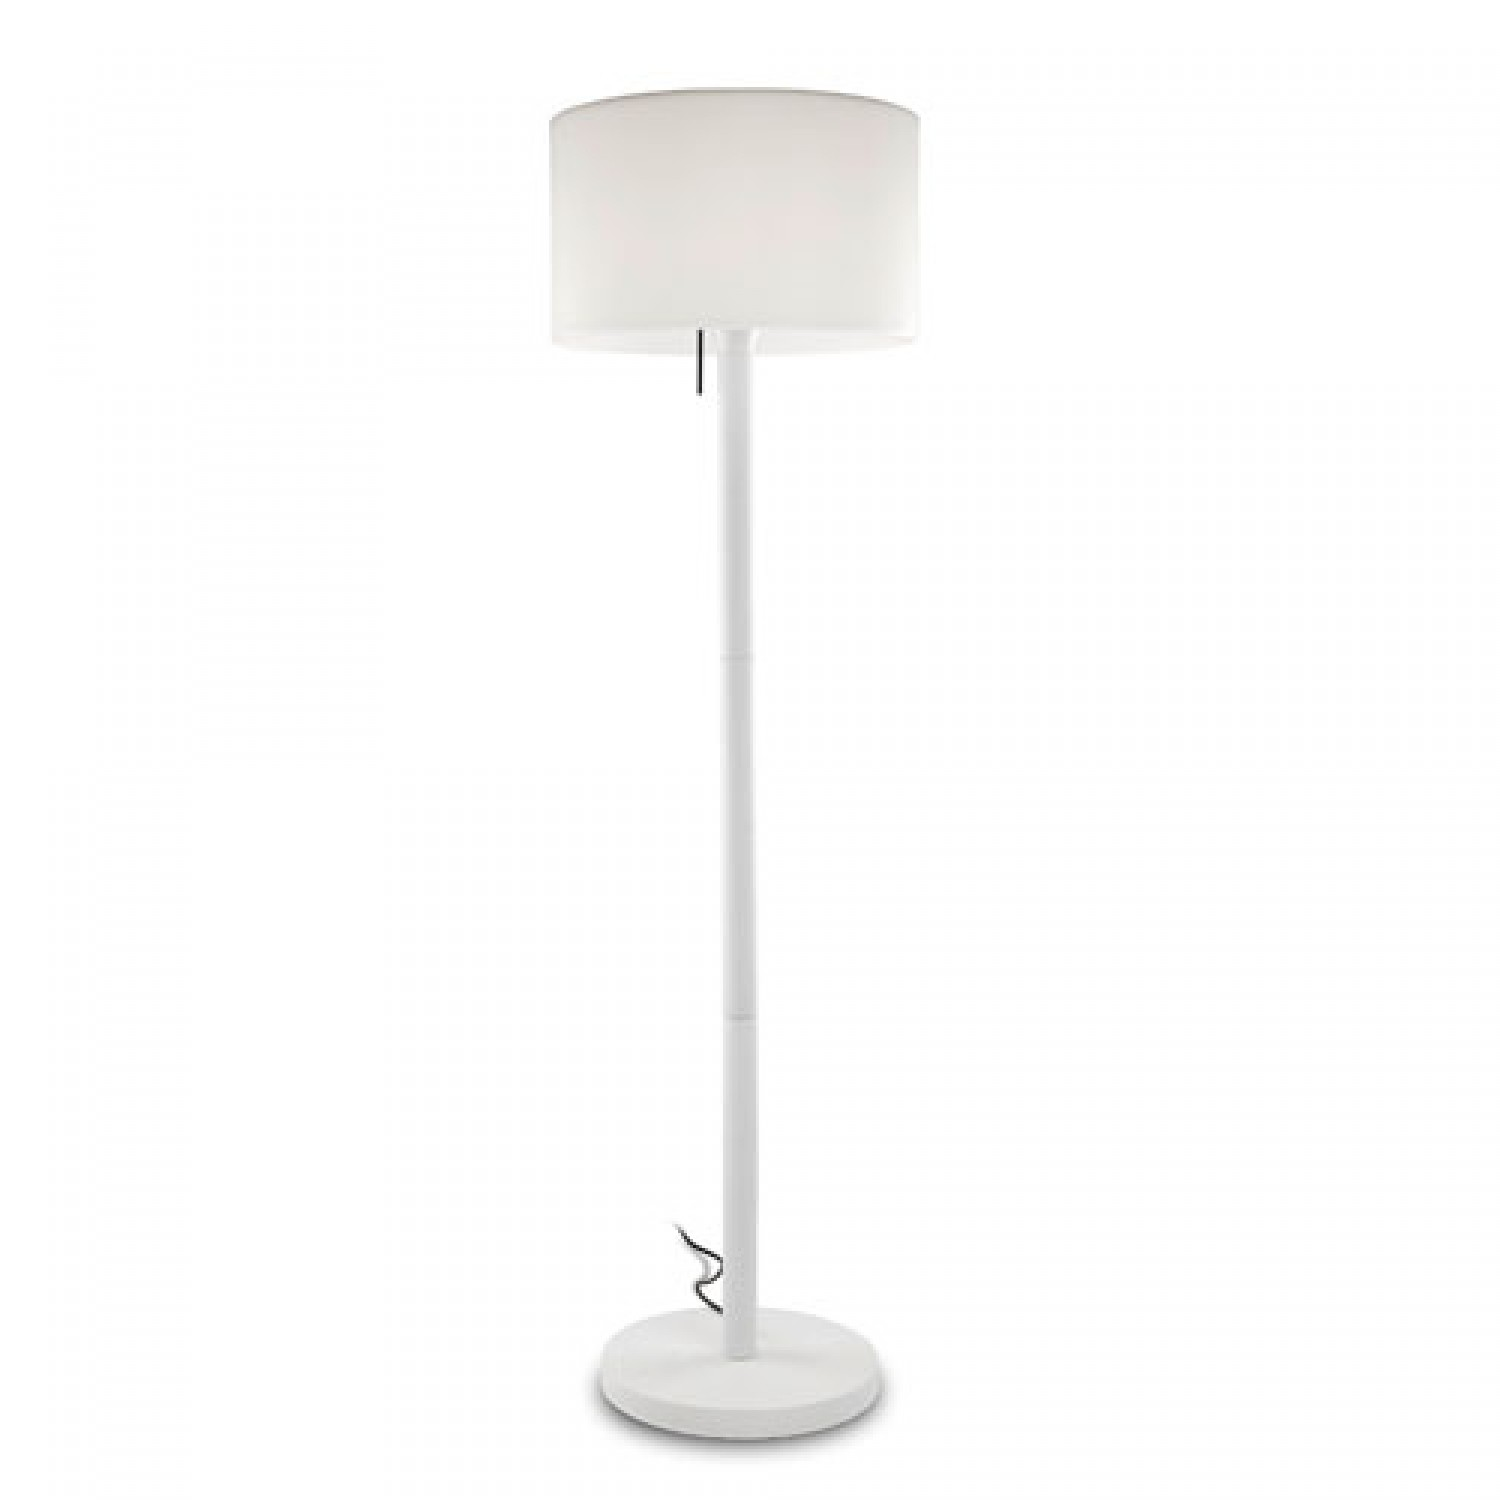 Lampadaire ext rieur design eclairage ext rieur for Lampadaire interieur design